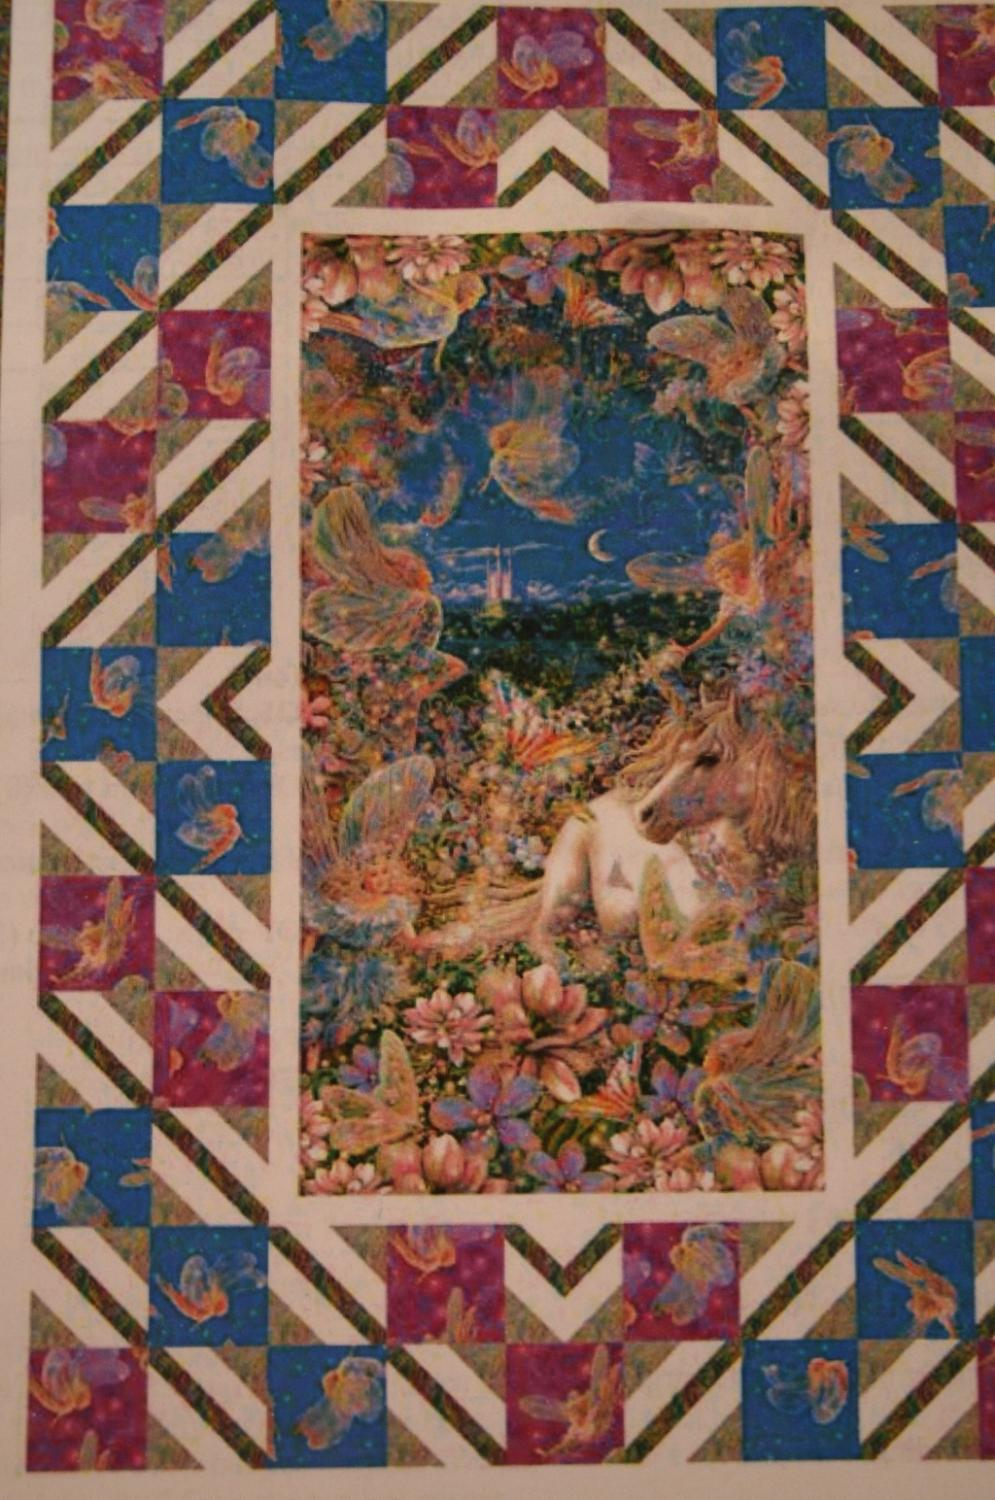 The center panel features fairies and a unicorn amongst flowers.  The border uses fairy fabric in blues and pinks.